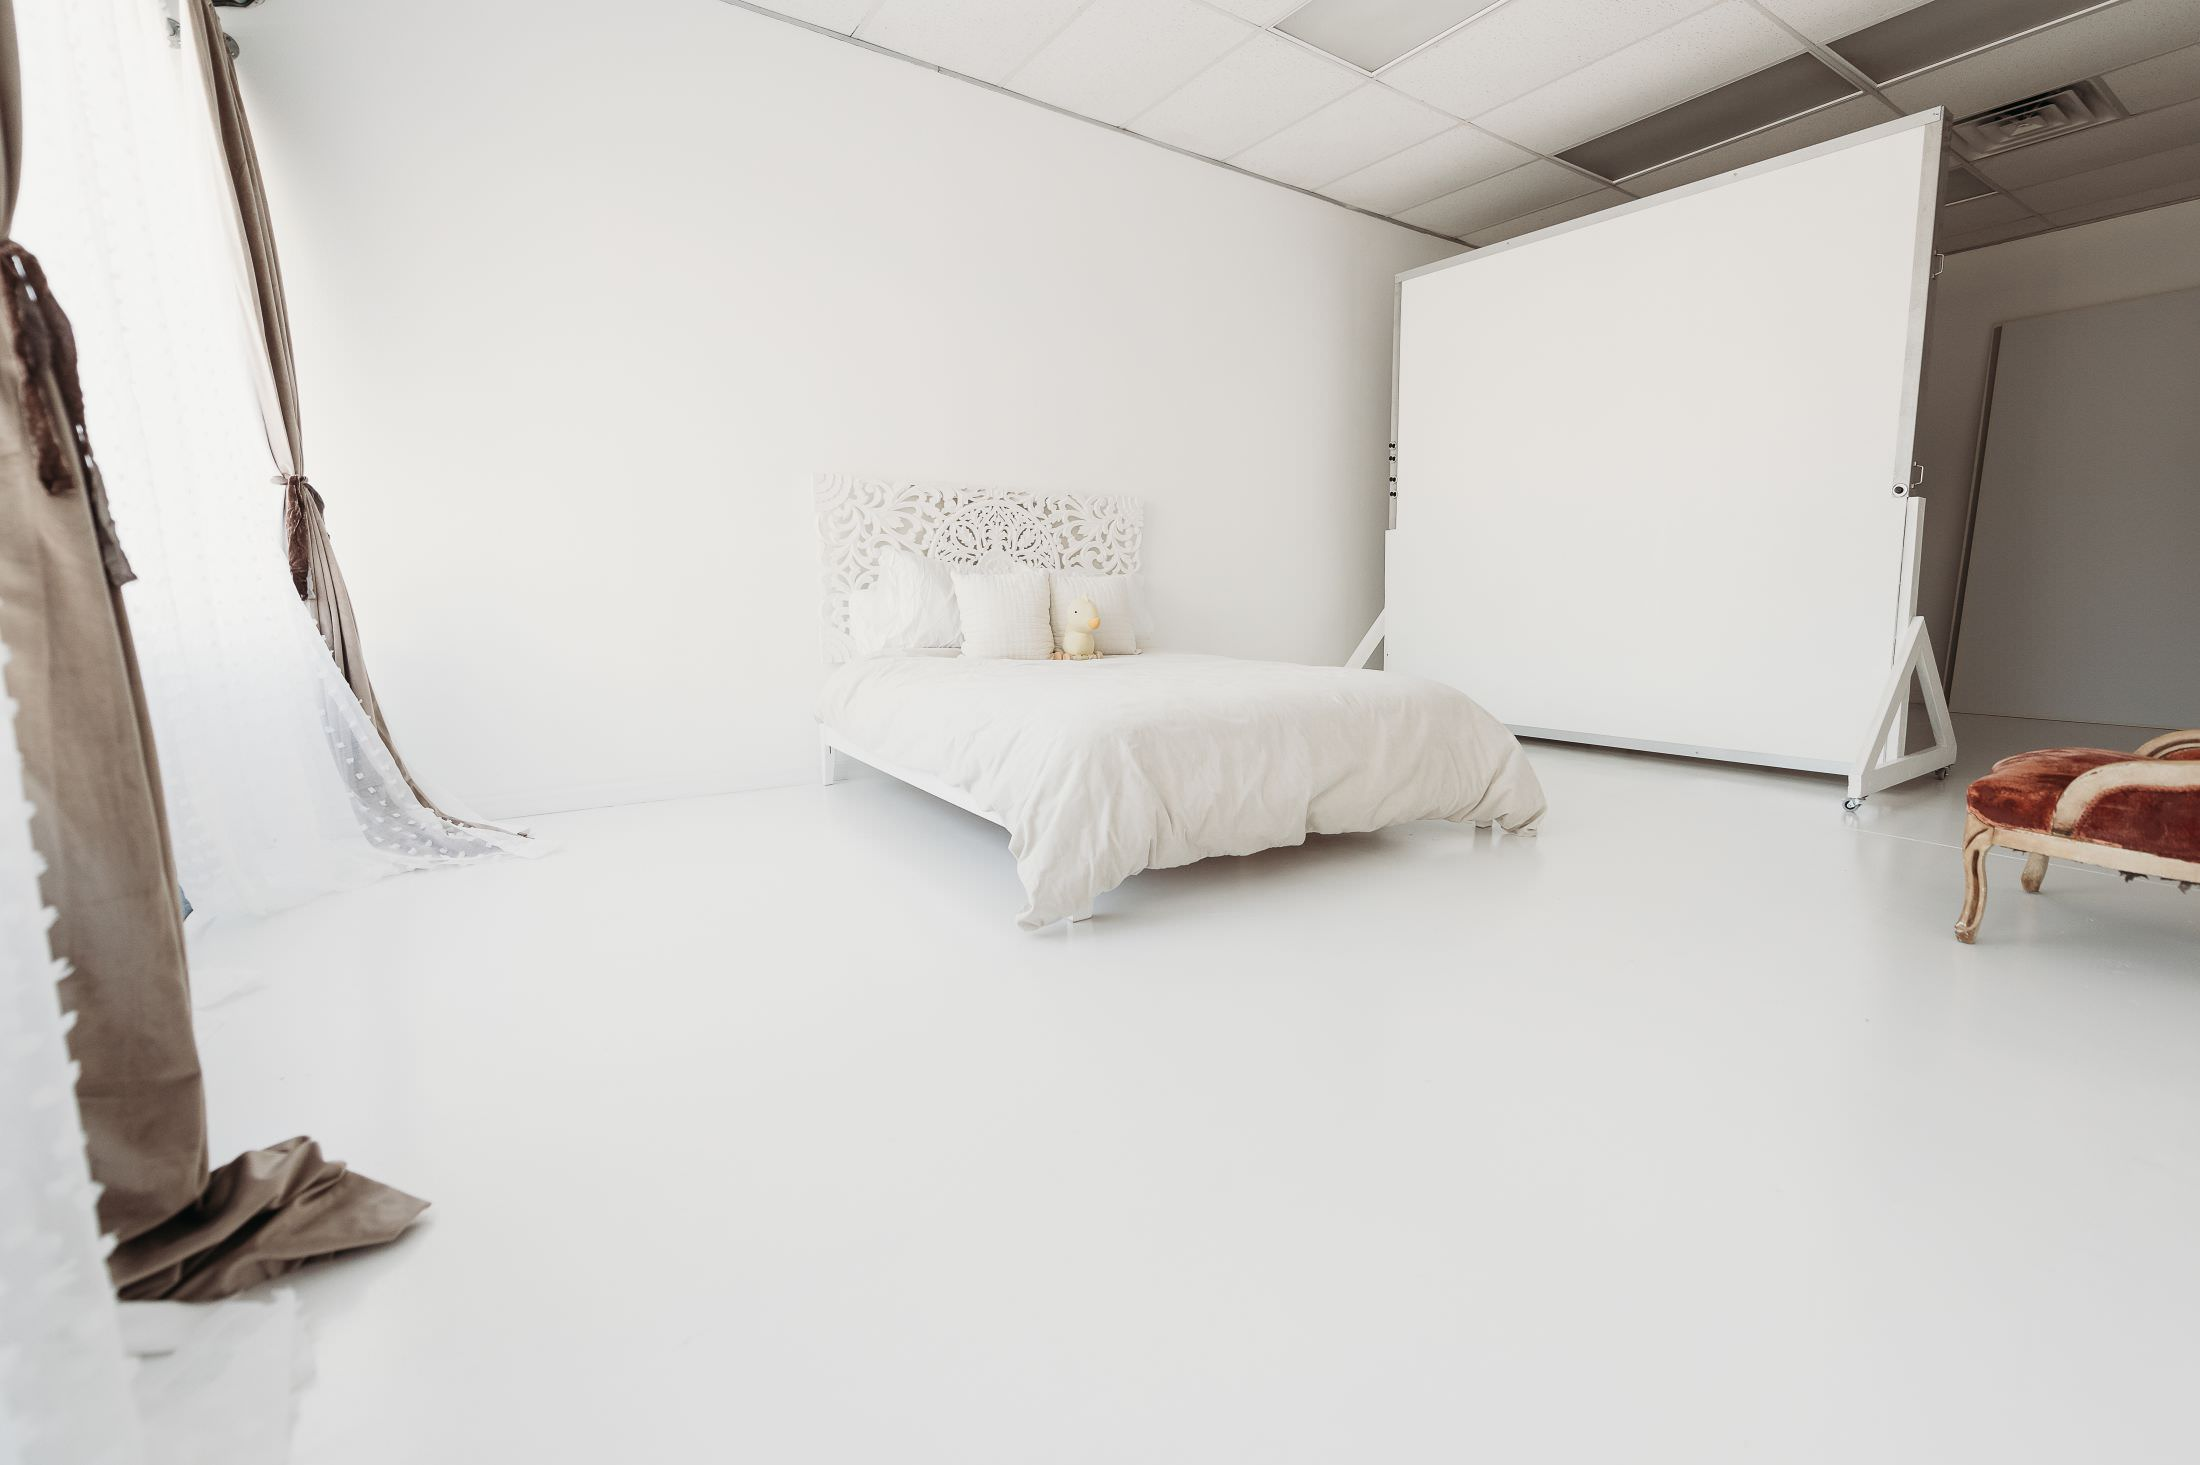 An image of a photography studio located in Lutz, FL